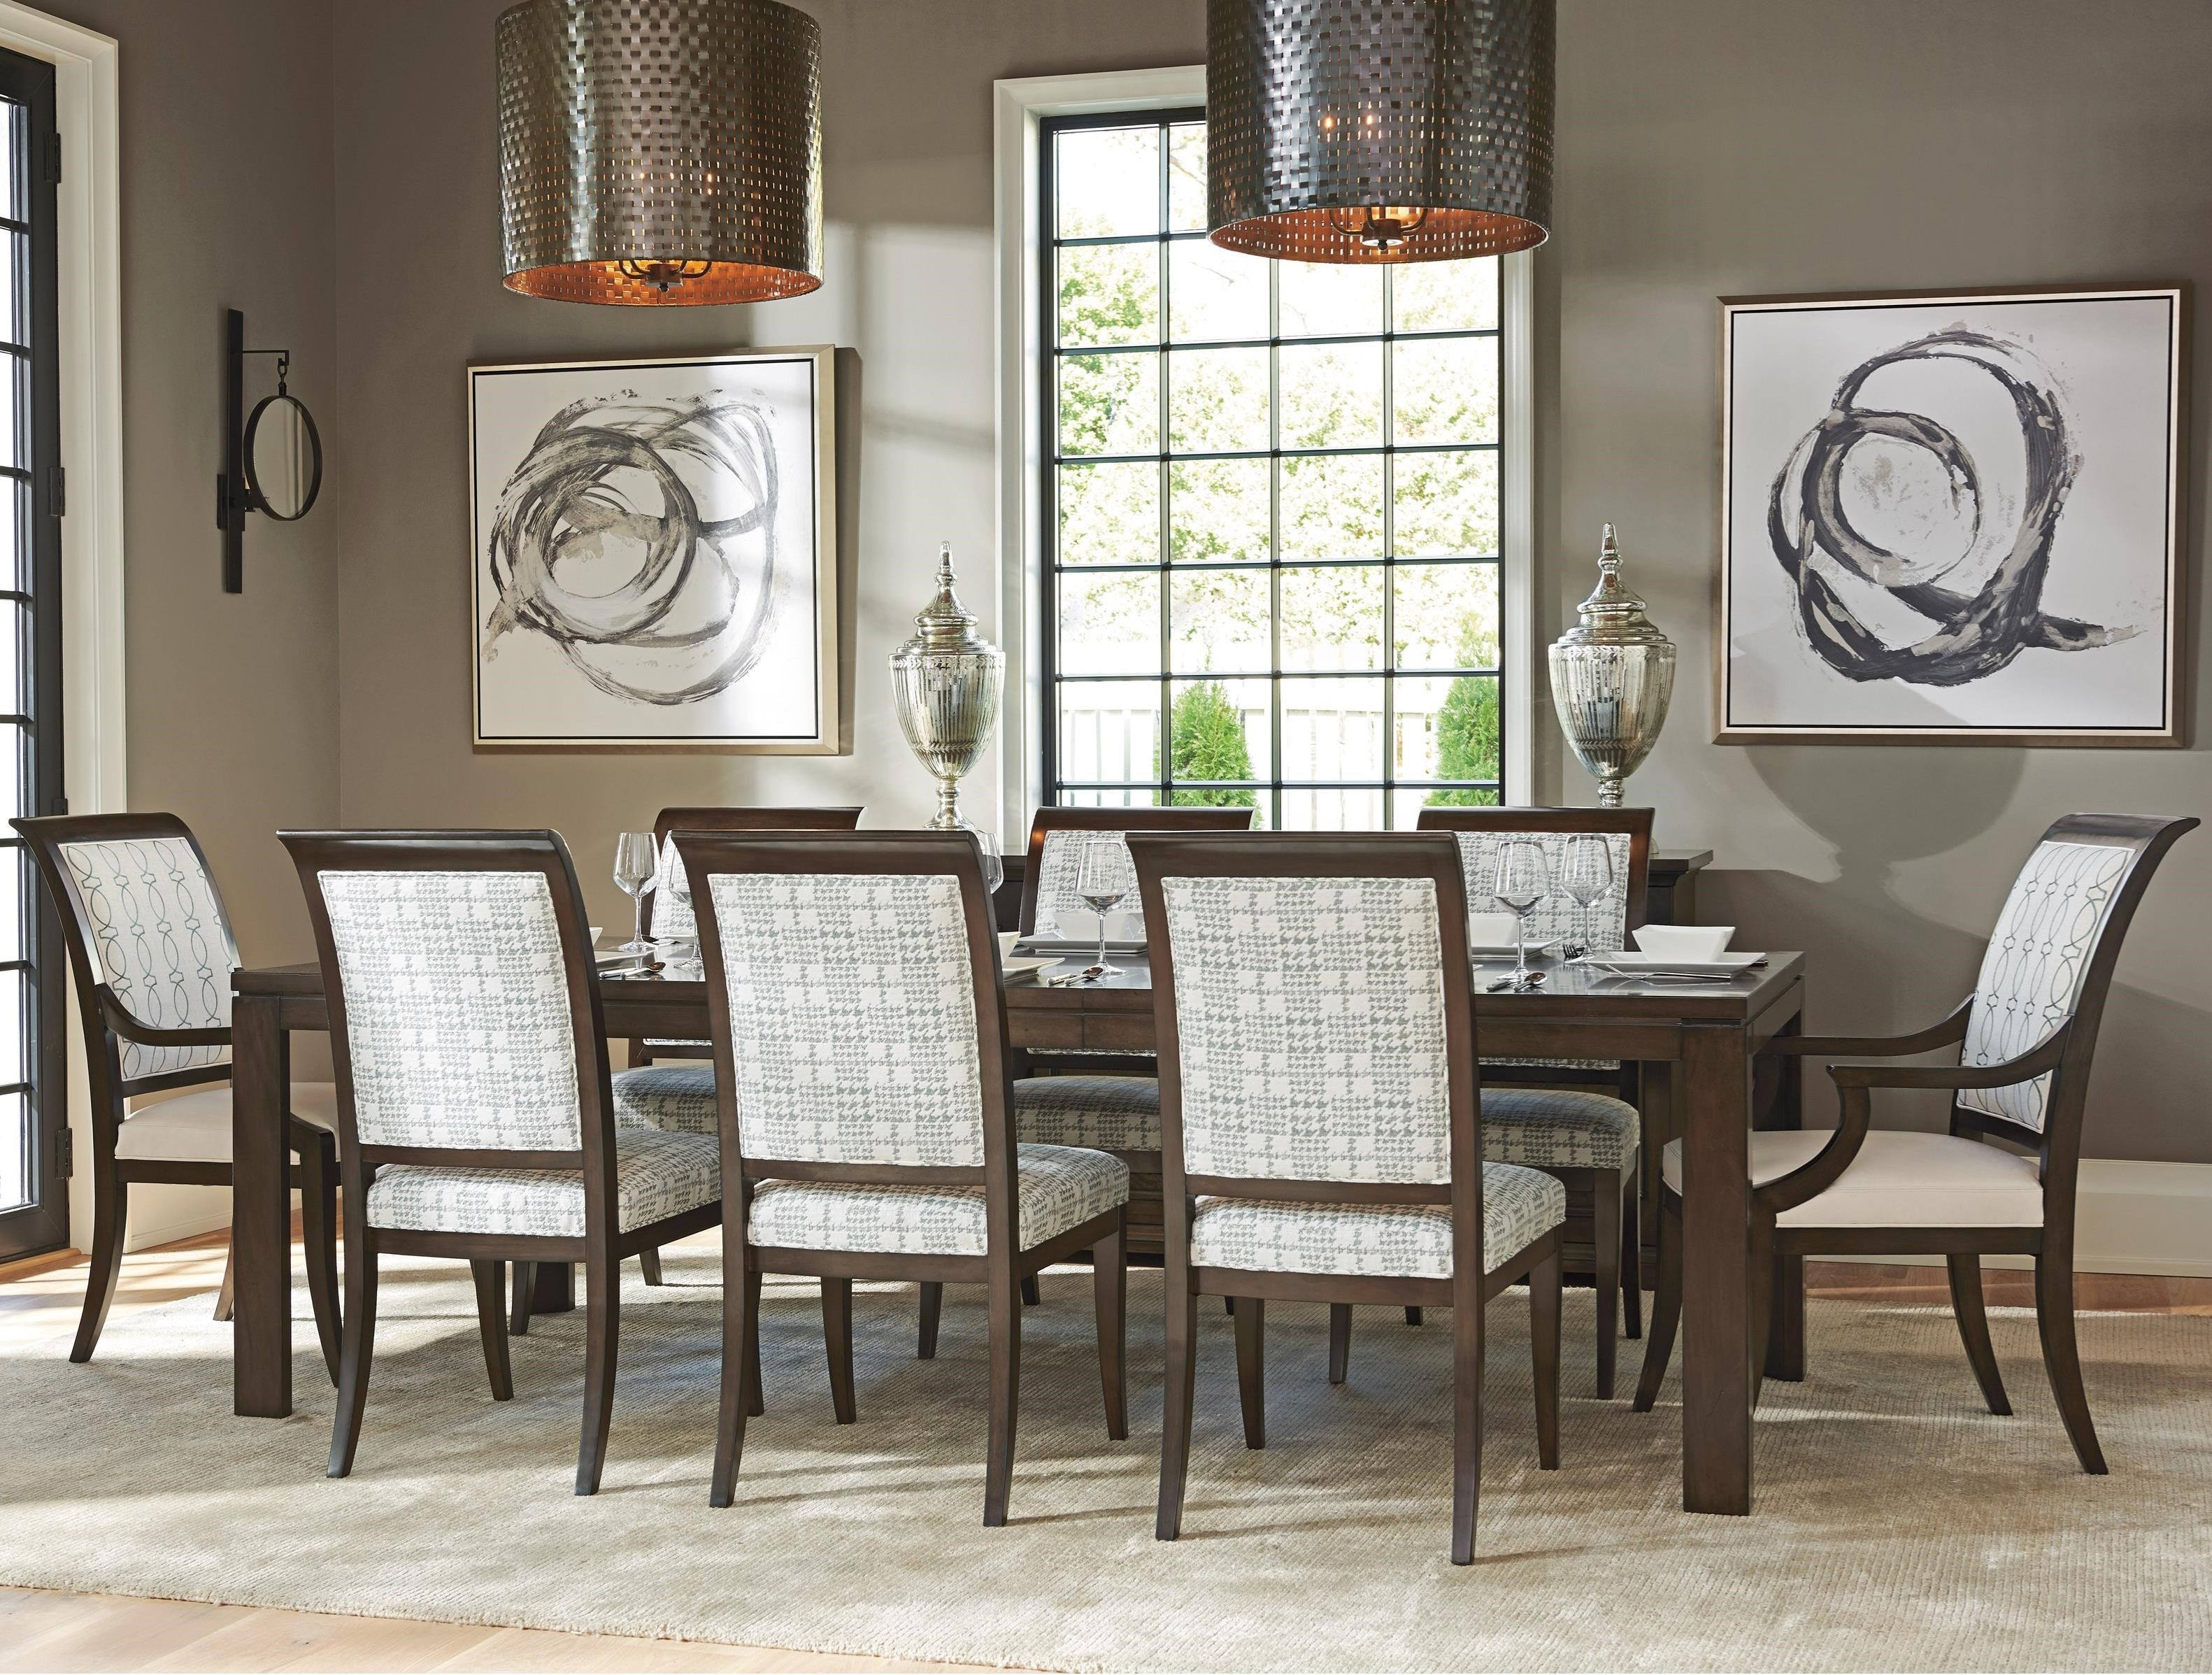 Brentwood 9 Pc Dining Set by Barclay Butera at Baer's Furniture